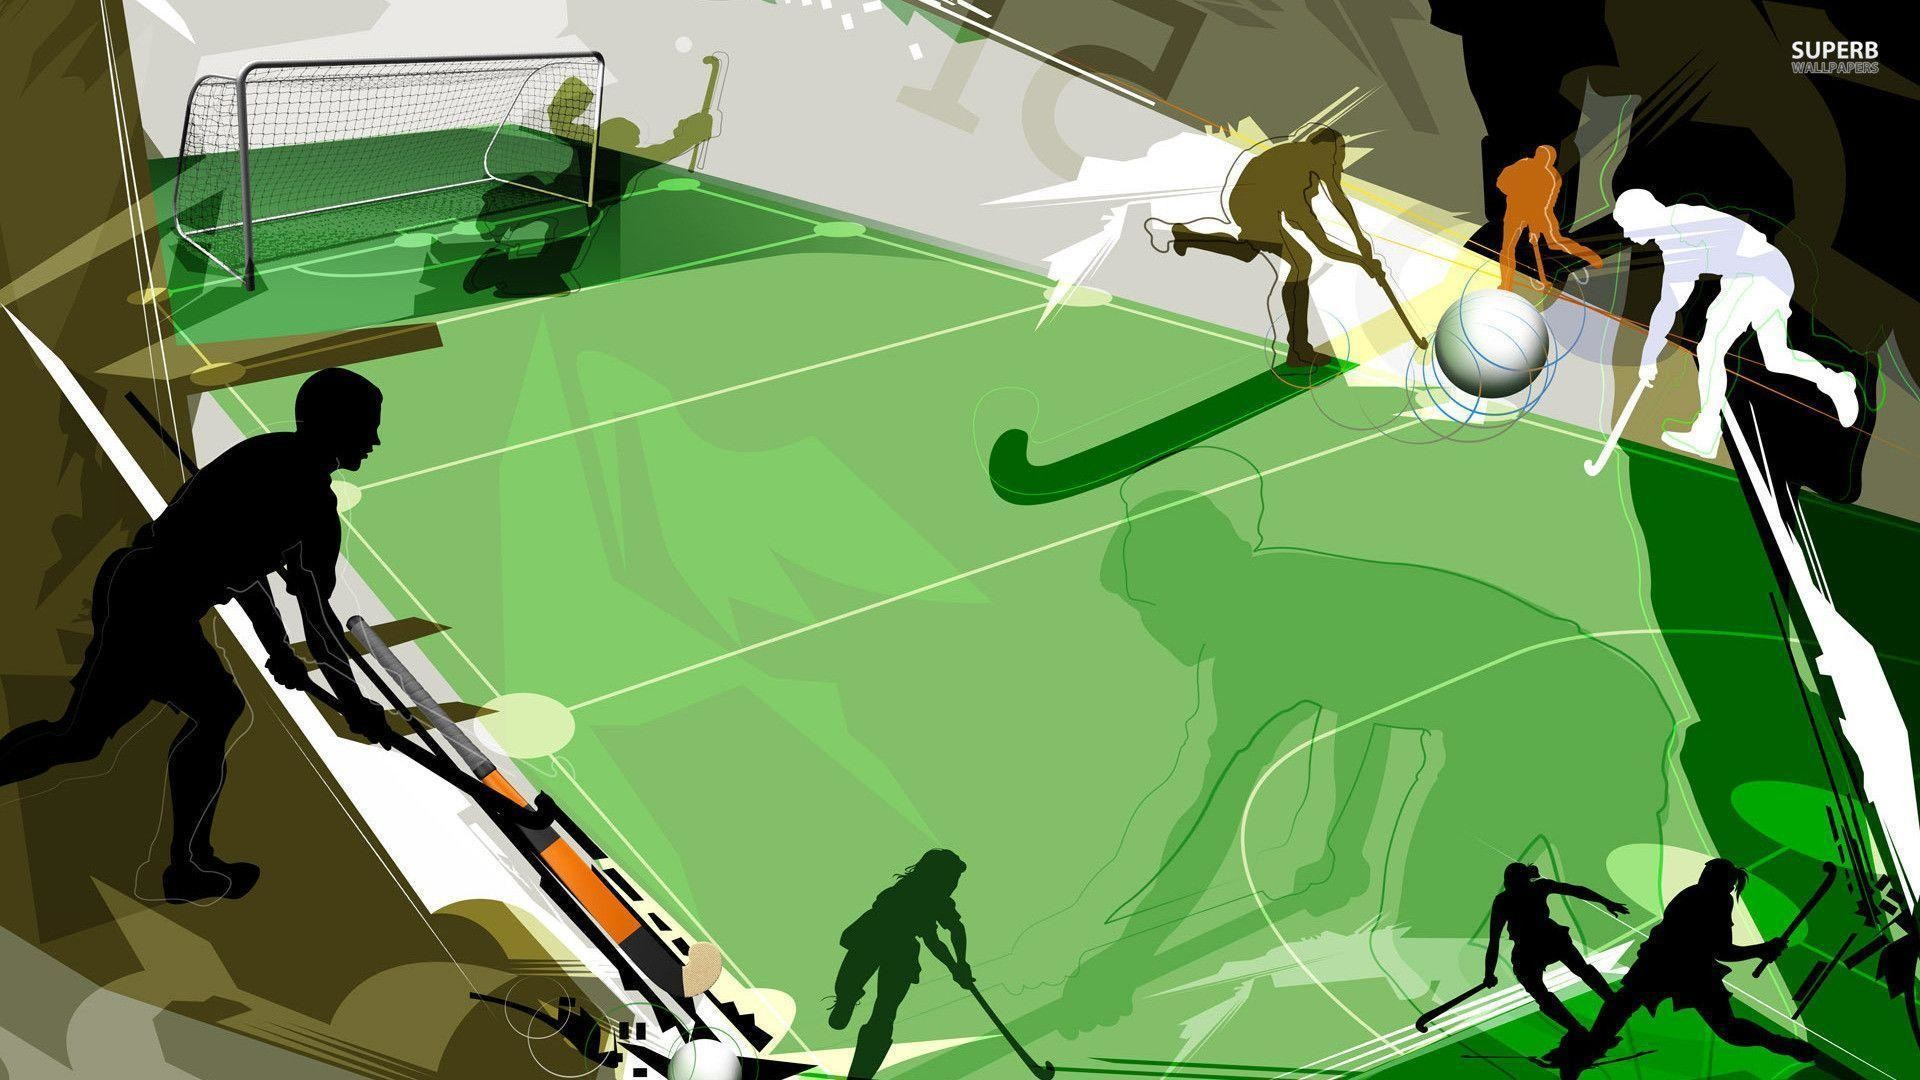 Sport Collection Hd Wallpapers 2048x2048 Sport Wallpapers: Field Hockey Wallpapers (79+ Images